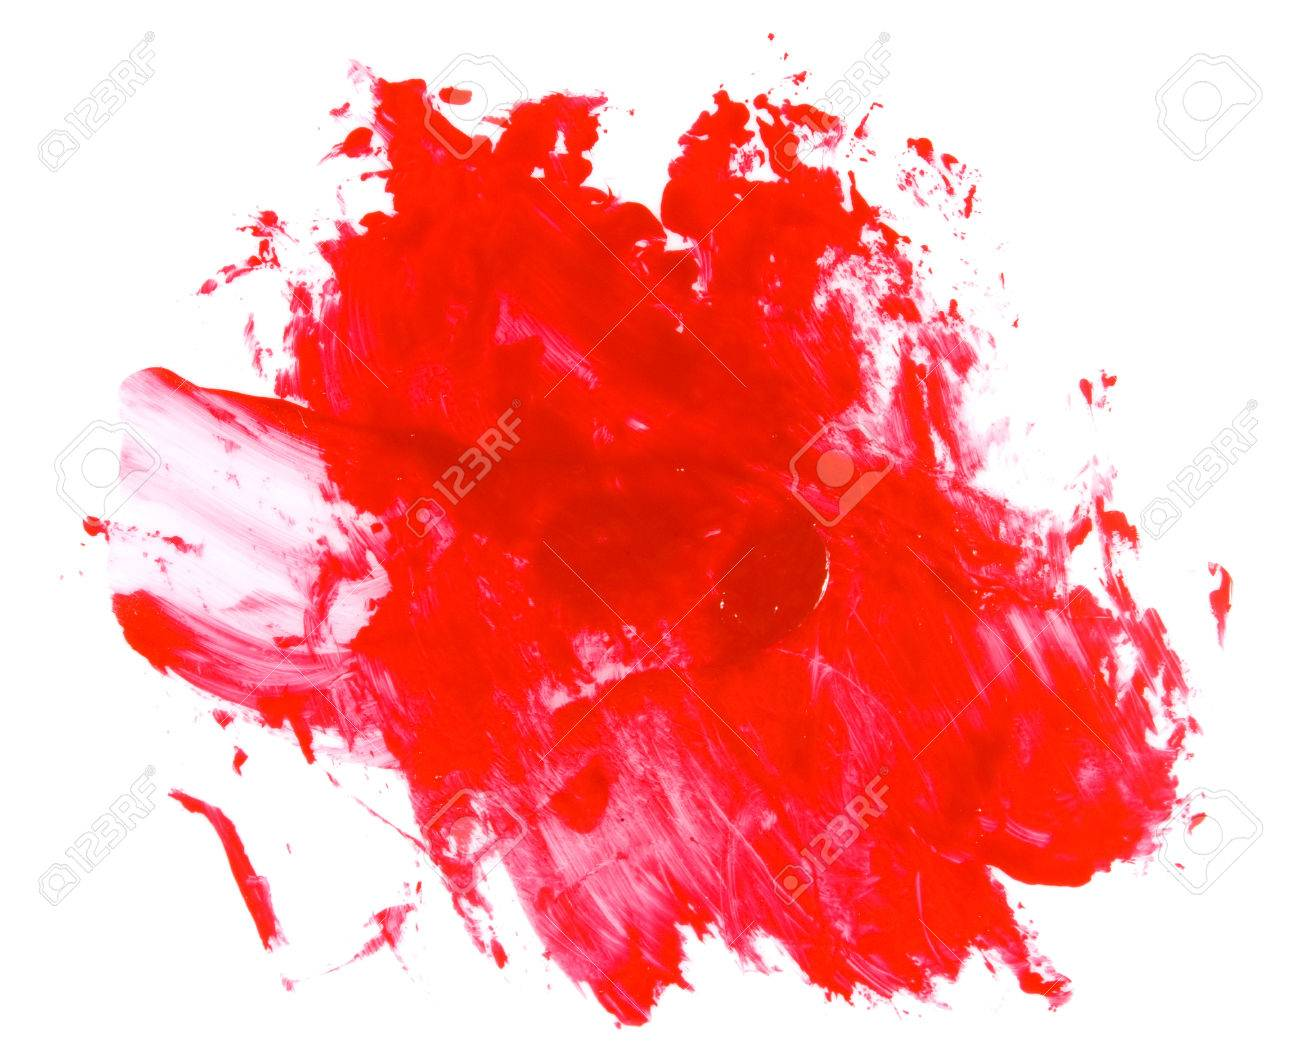 Isolated Image Of Red Paint Spot Close Up Stock Photo Picture And